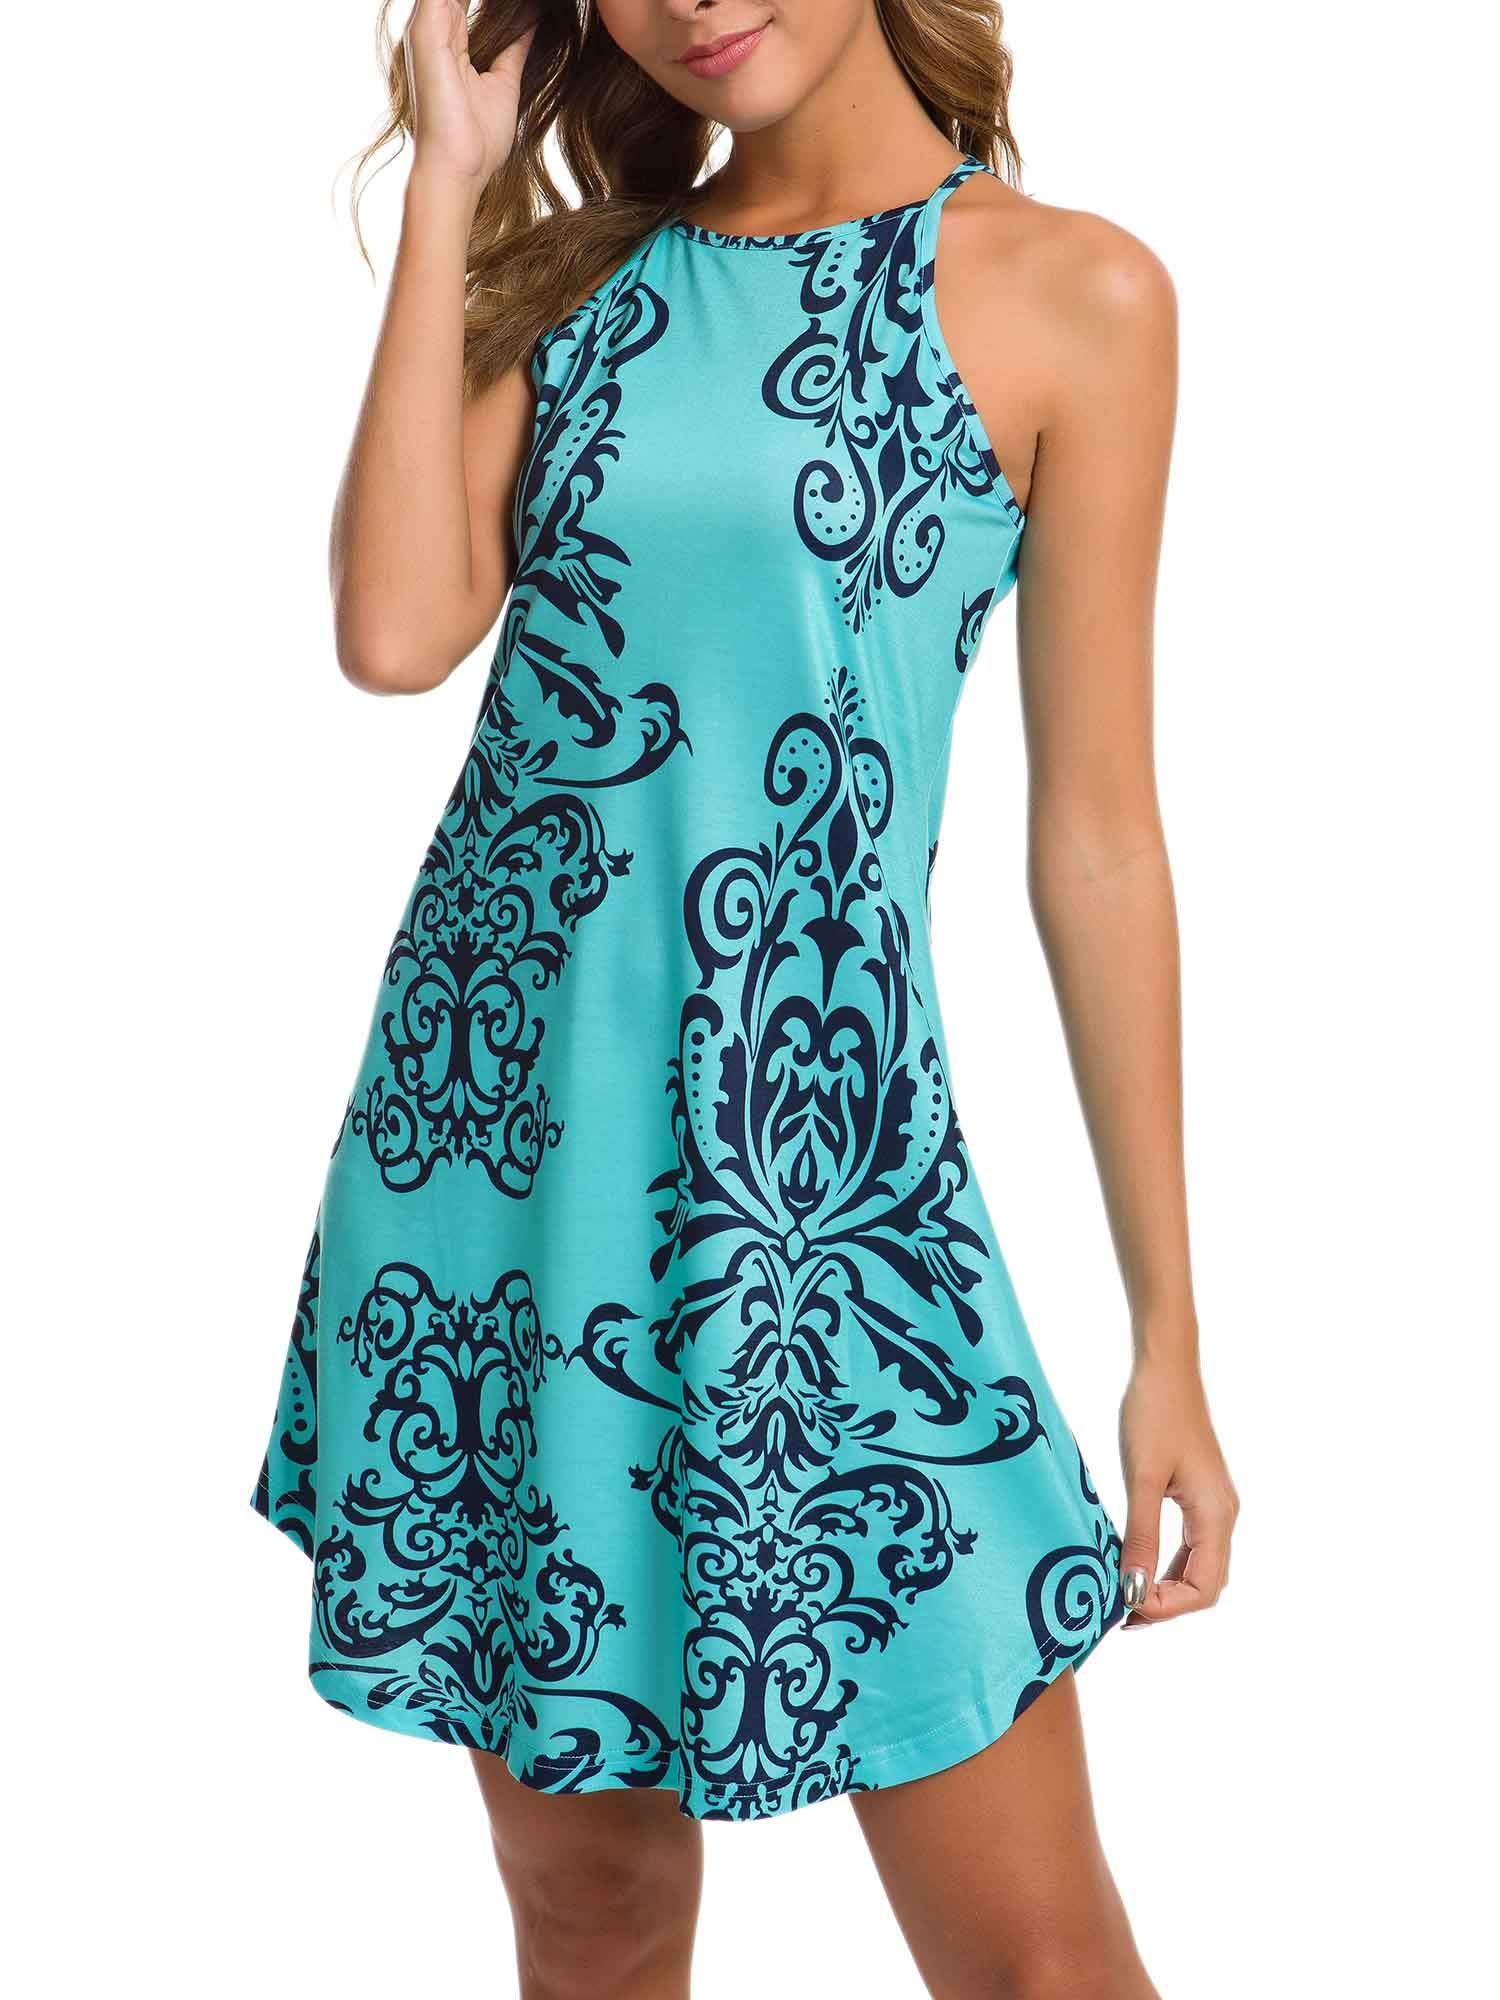 Available at Amazon: GUBERRY Women's Halter Neck Floral Casual Summer Sleeveless Midi Beach Dress